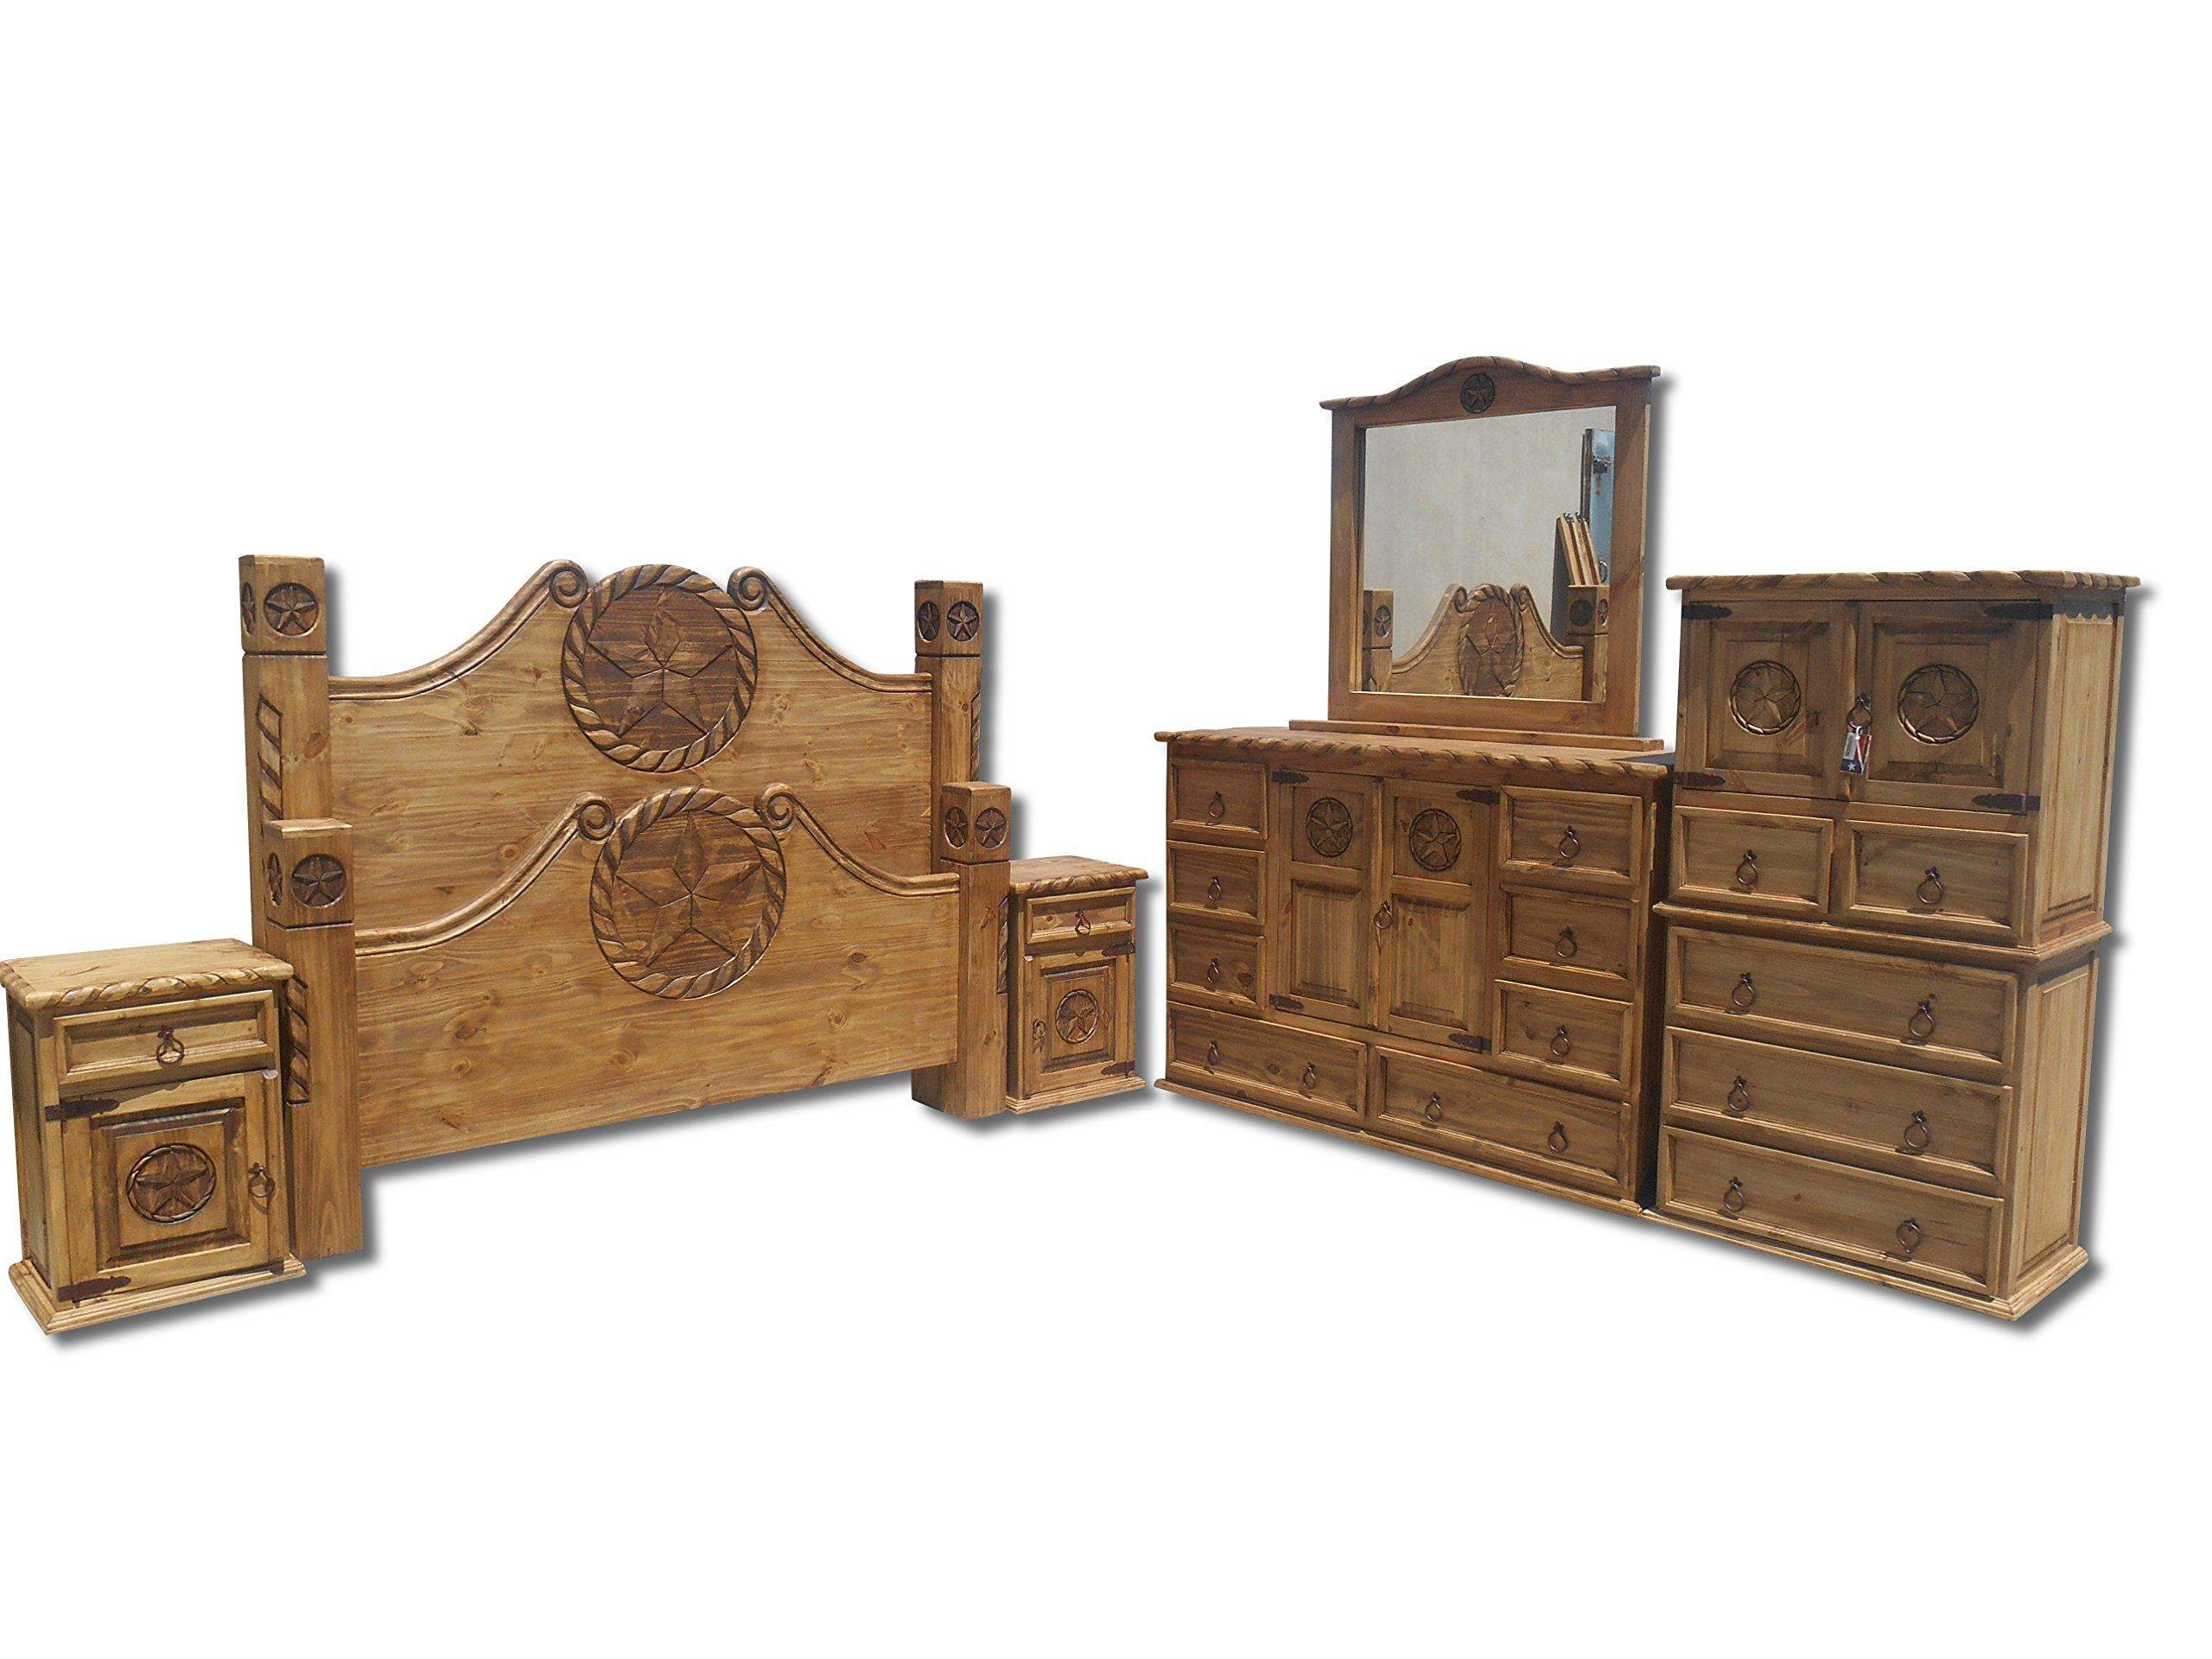 Texas Star Rustic Bedroom Set With Rope Accents Solid Wood King Extraordinary Rustic Bedroom Sets Design Ideas